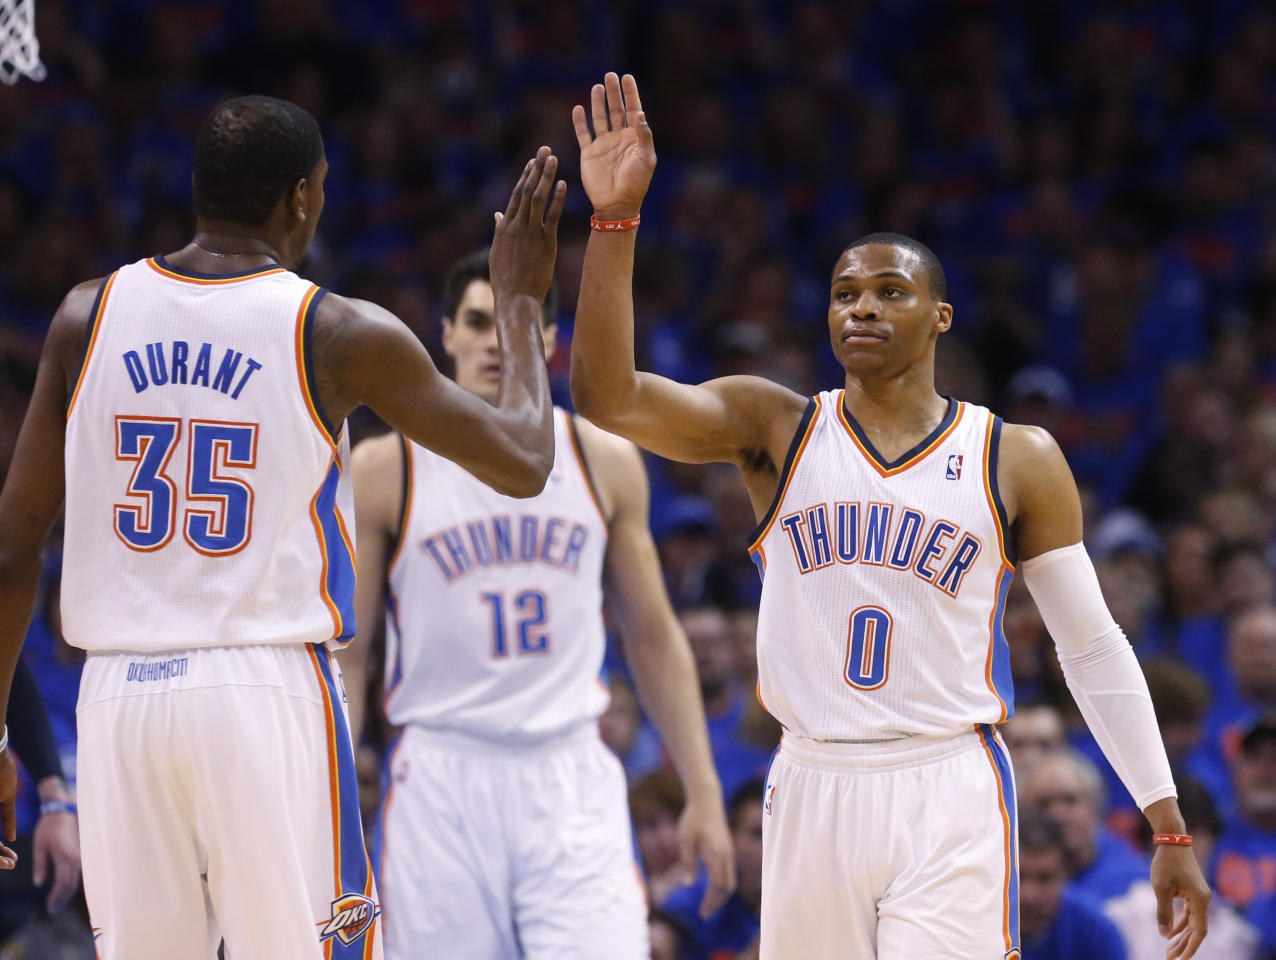 Oklahoma City Thunder guard Russell Westbrook (0) high fives teammate Kevin Durant (35) in the first quarter of Game 7 of an opening-round NBA basketball playoff series against the Memphis Grizzlies in Oklahoma City, Saturday, May 3, 2014. (AP Photo/Sue Ogrocki)